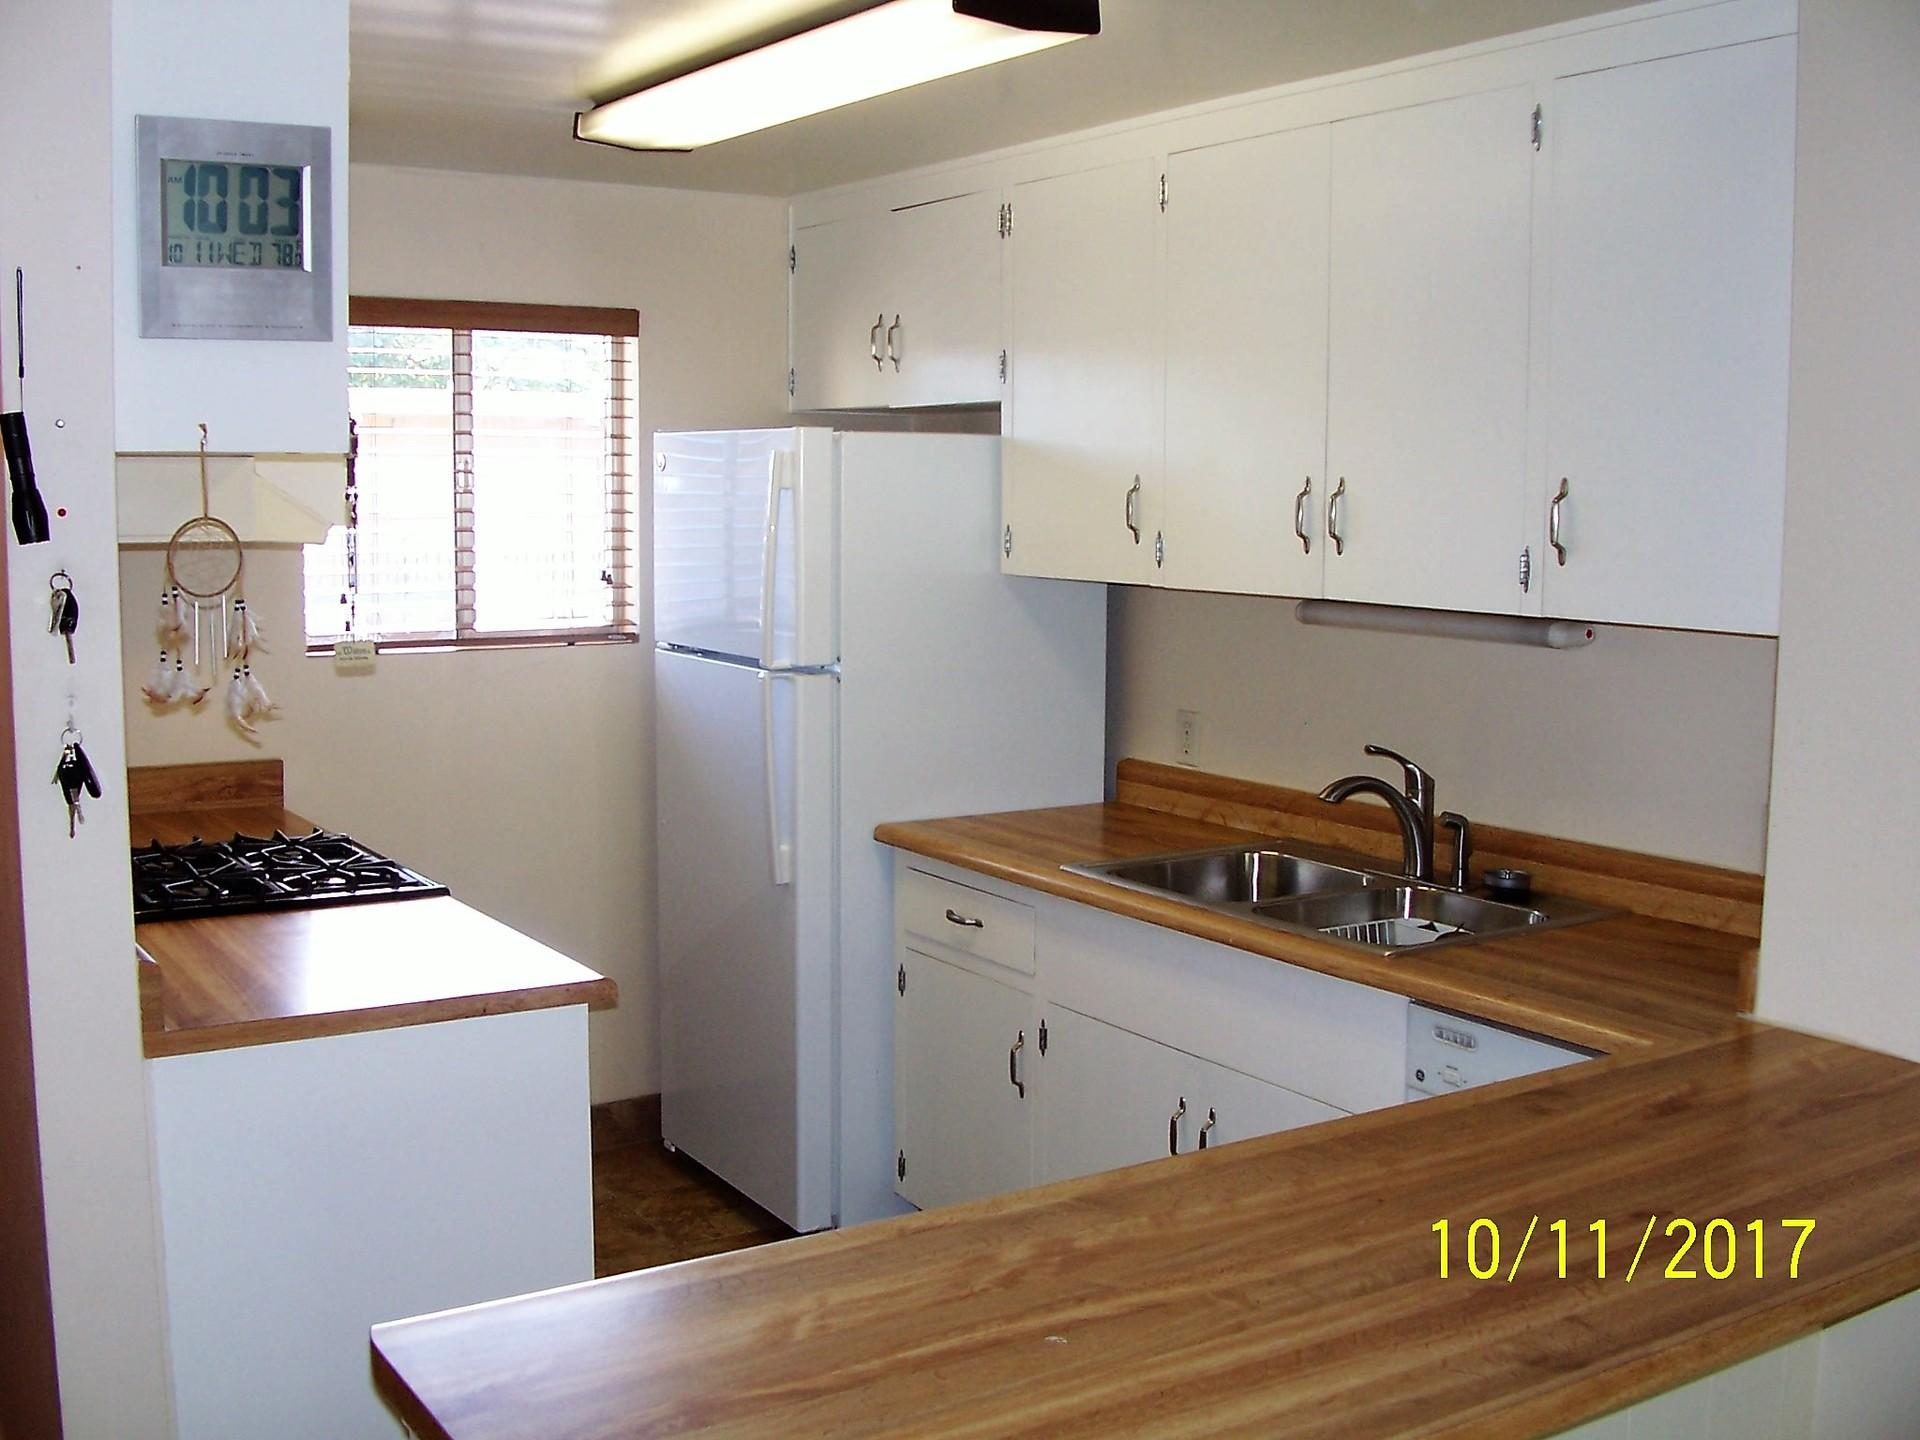 Redesigned Mid Century 1 BR Studio in Great Location Border of Old to... photo #1